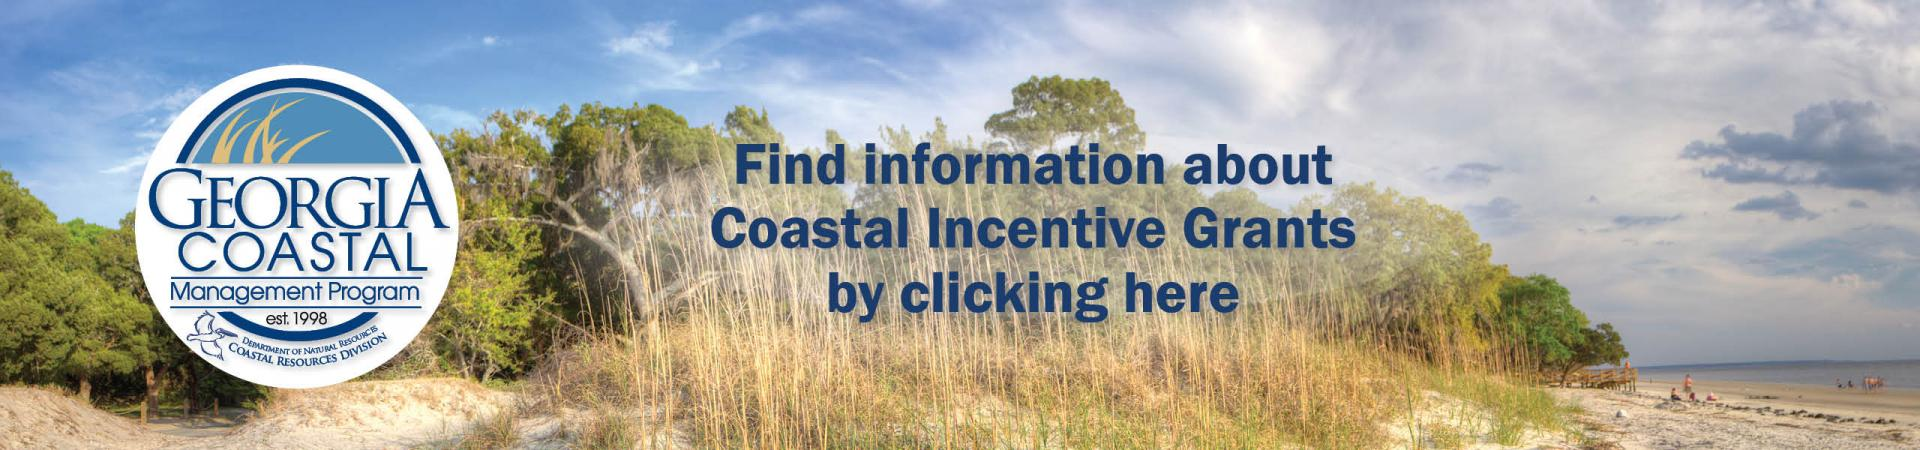 Coastal Incentive Grants